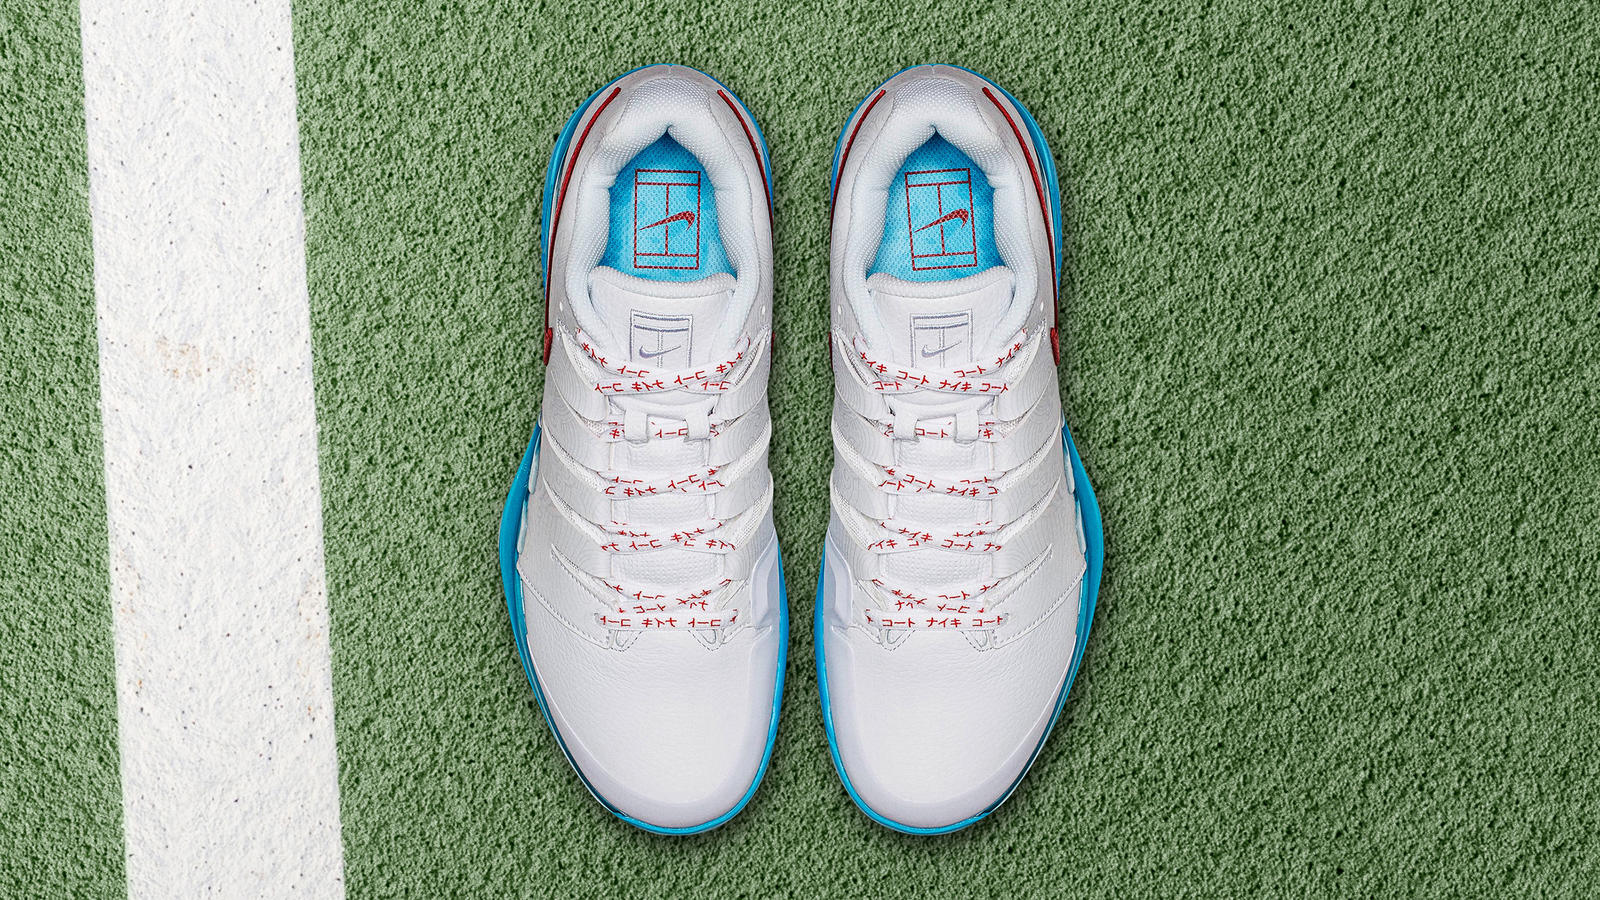 NikeCourt Air Zoom Vapor X LTR PE